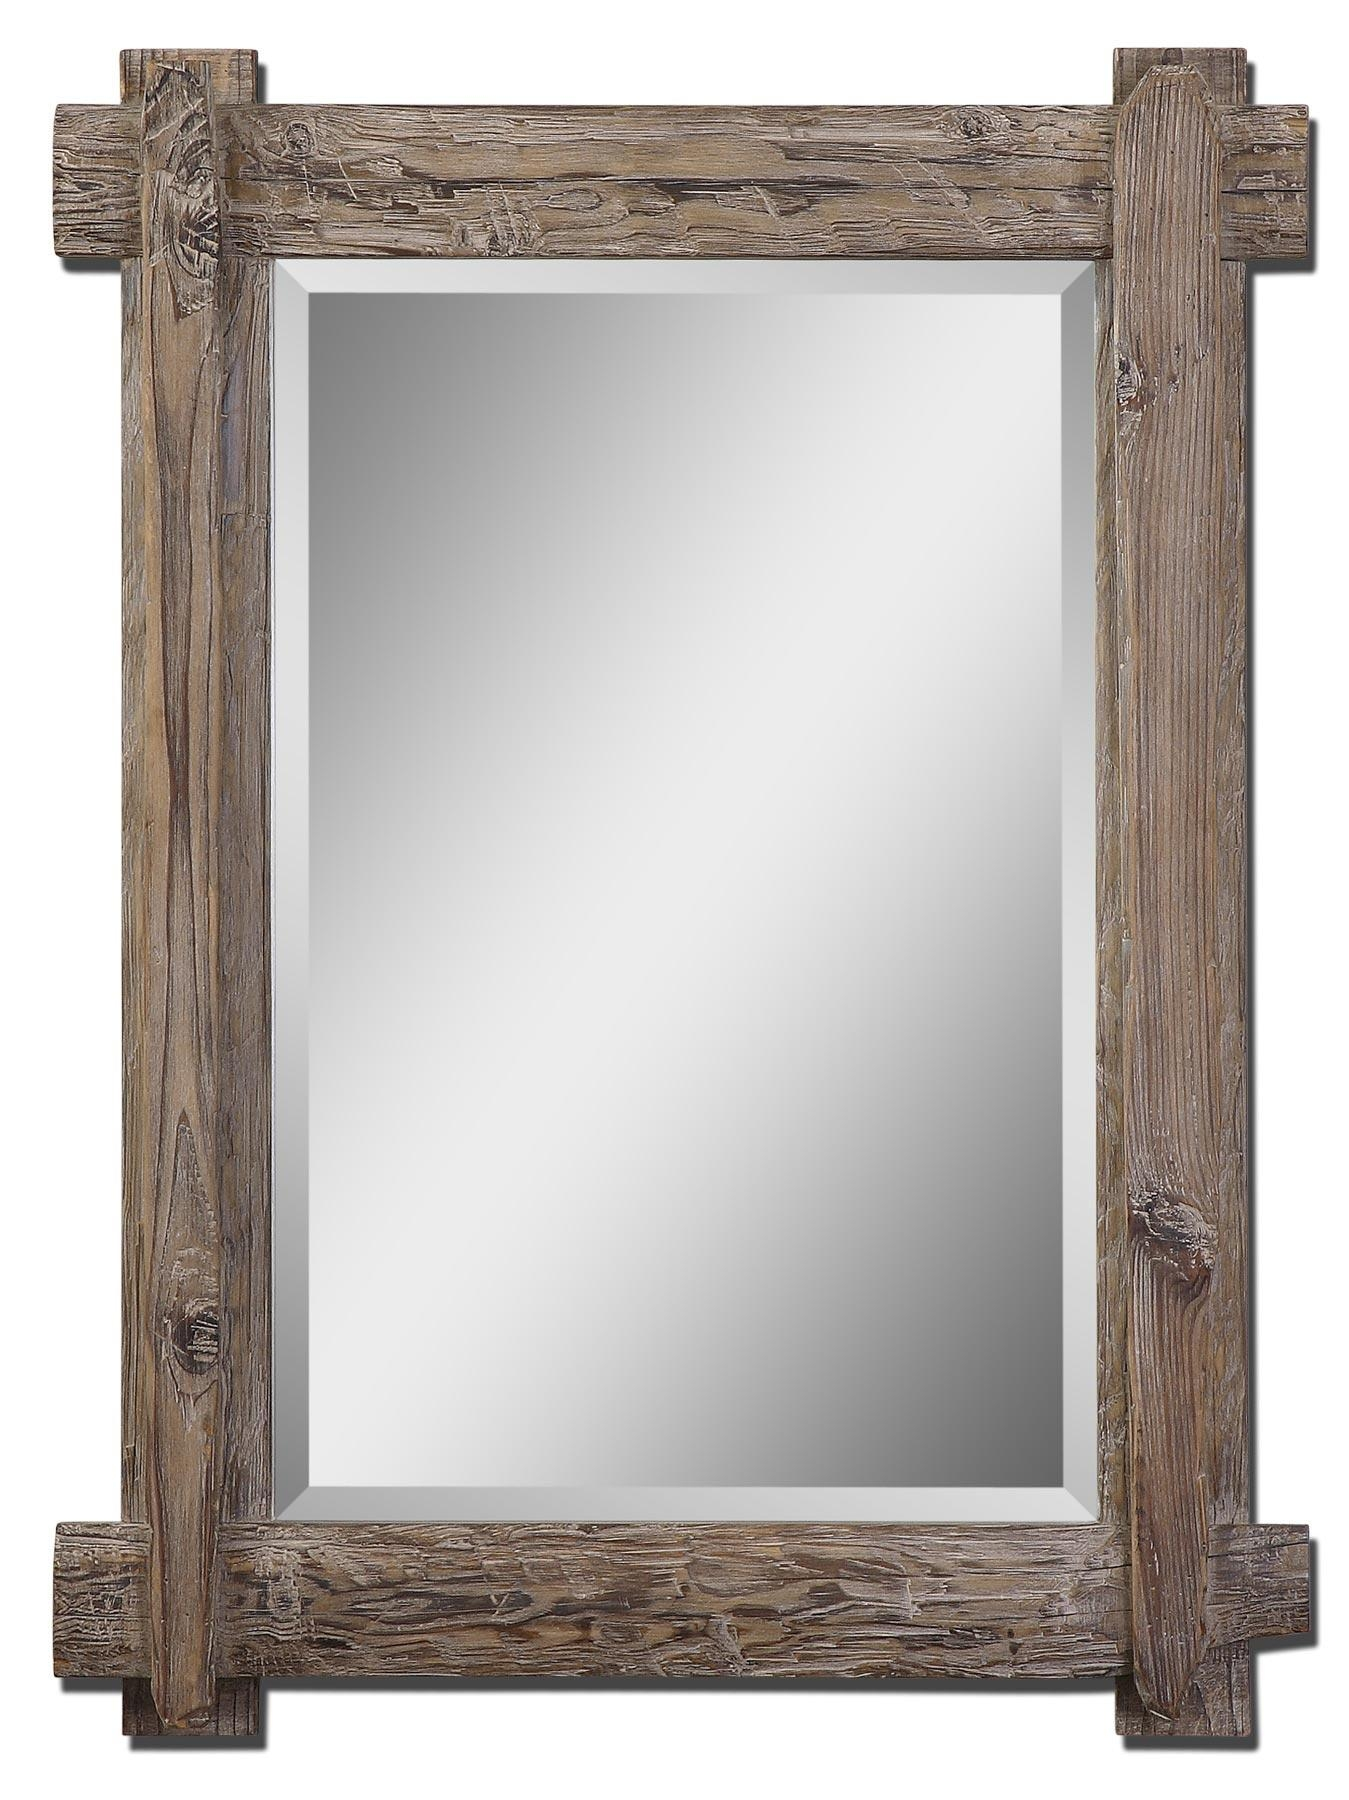 Mirrors Beveled, Reclaimed Wood Mirror Rustic Wood Mirror Frames Pertaining To Frames Mirrors (Image 17 of 20)